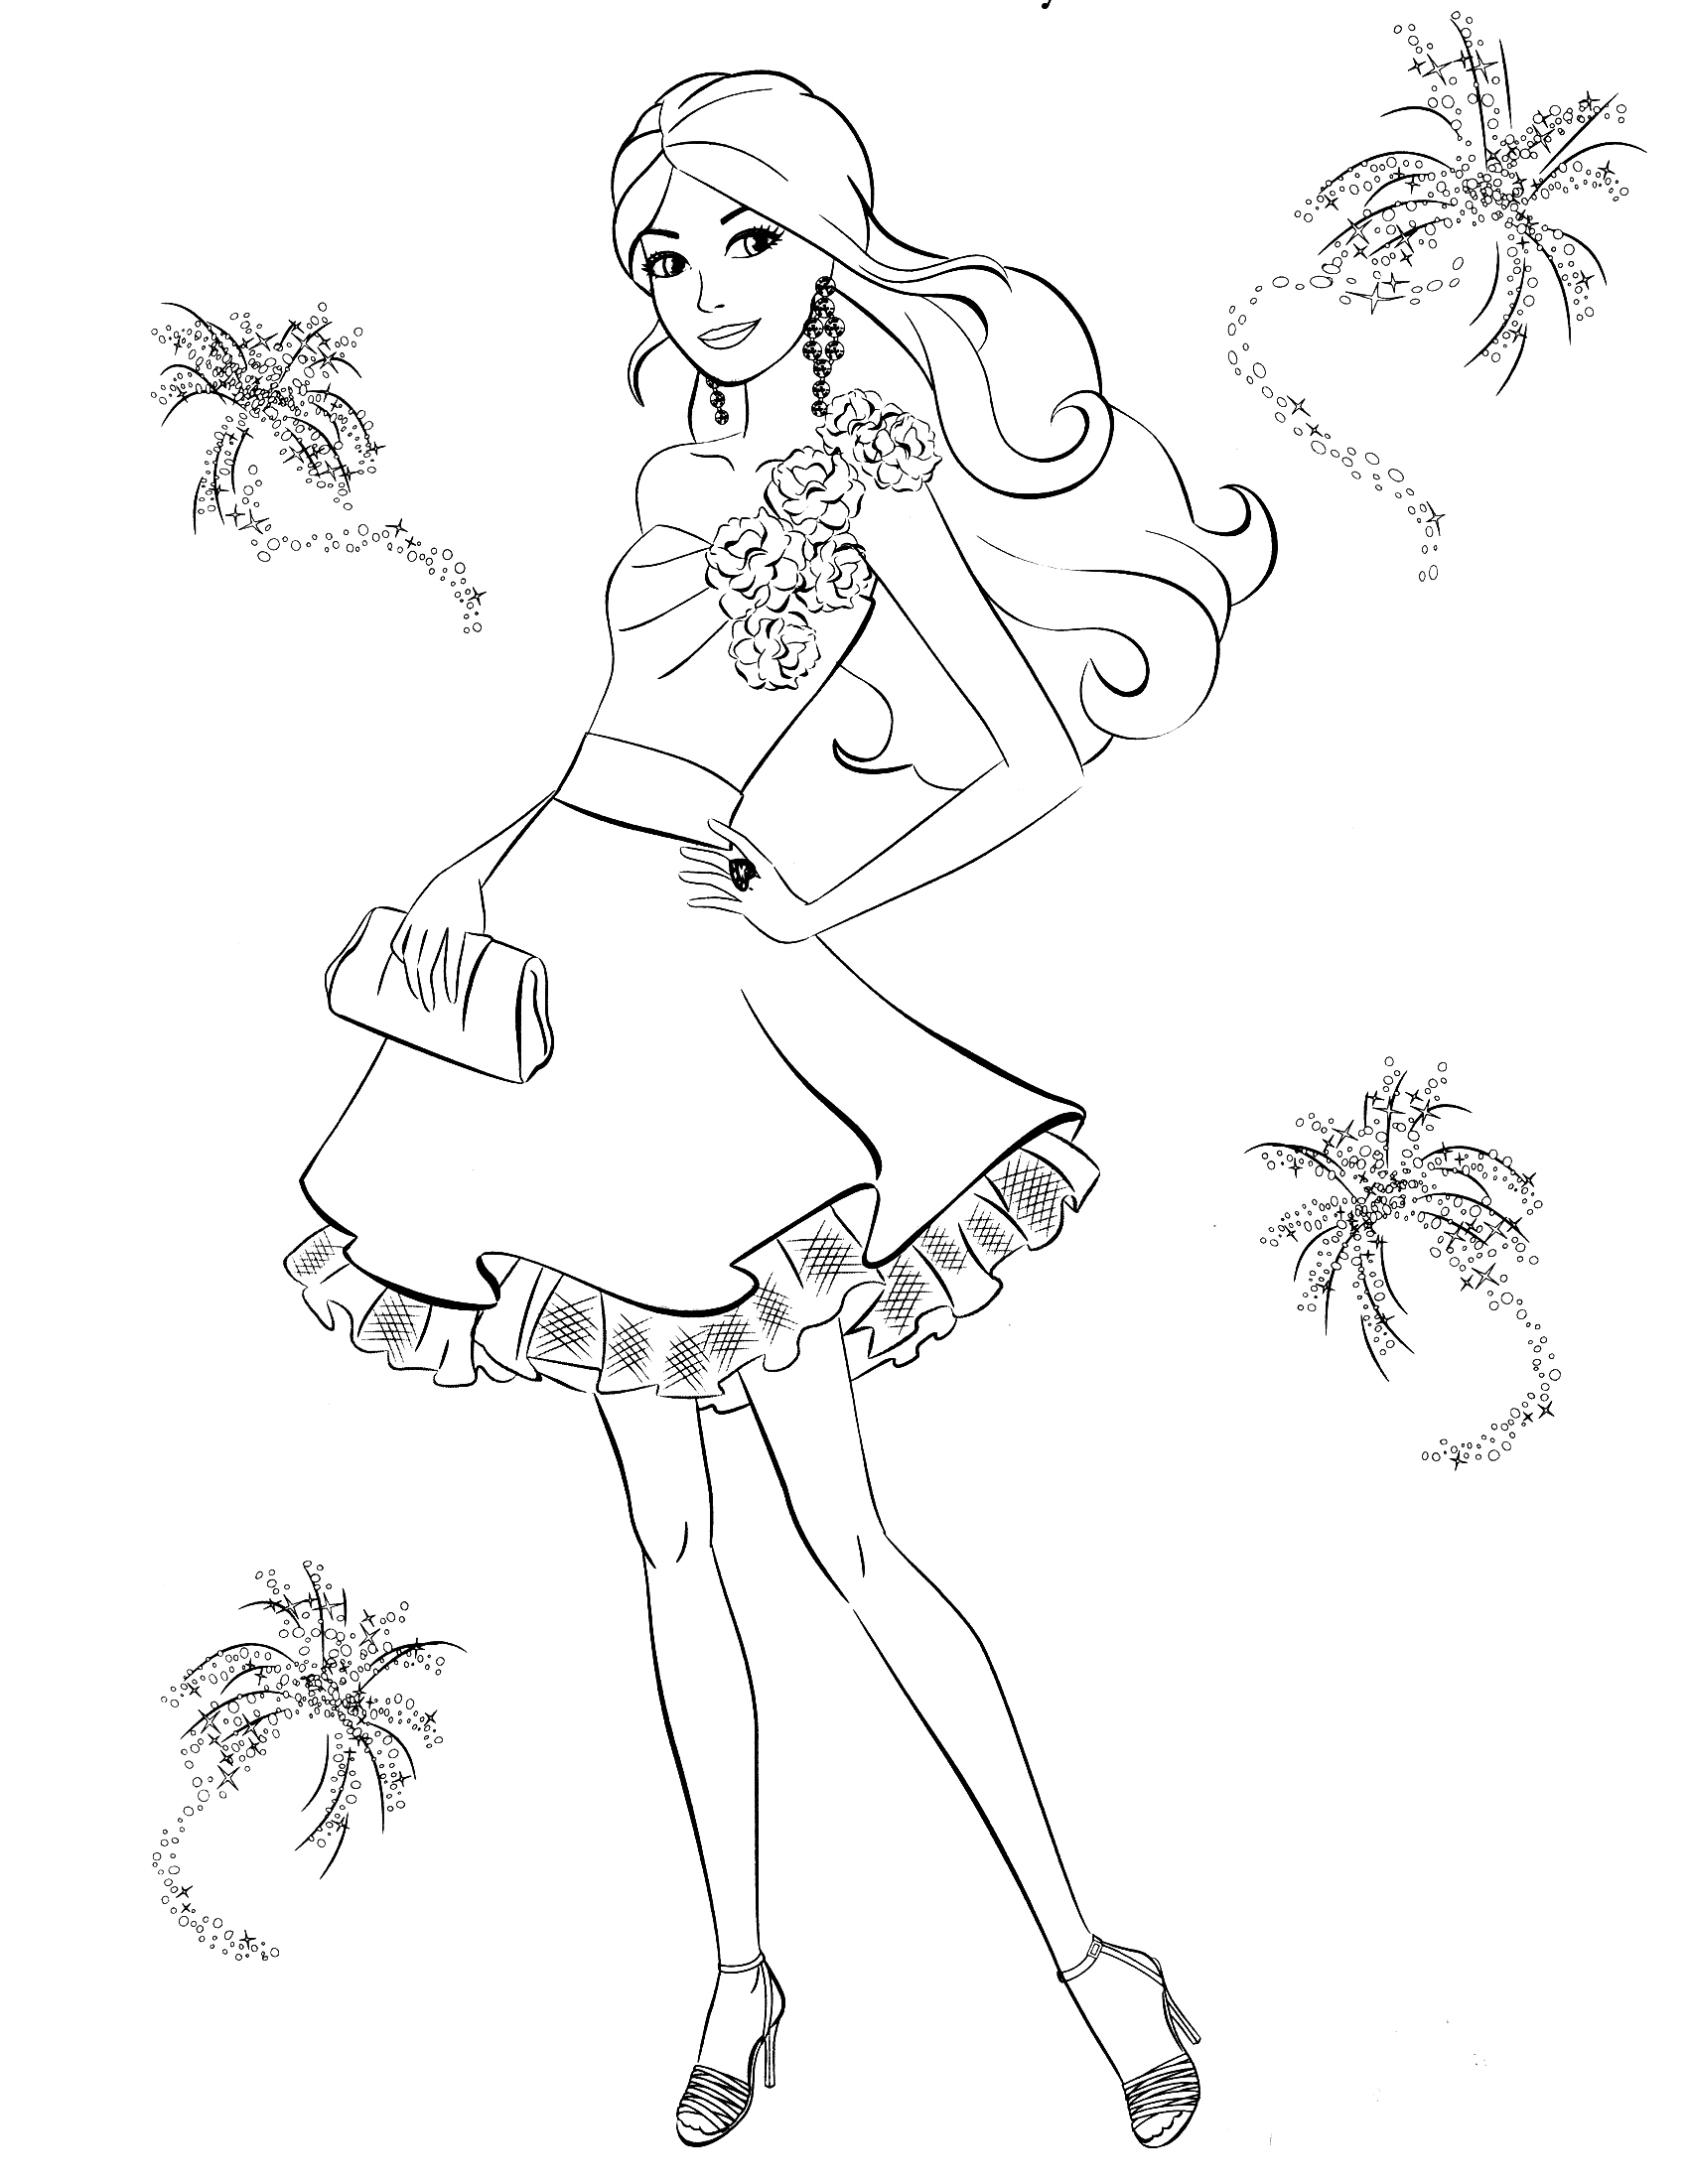 Barbie And Friends Coloring Pages at GetDrawings.com | Free ...